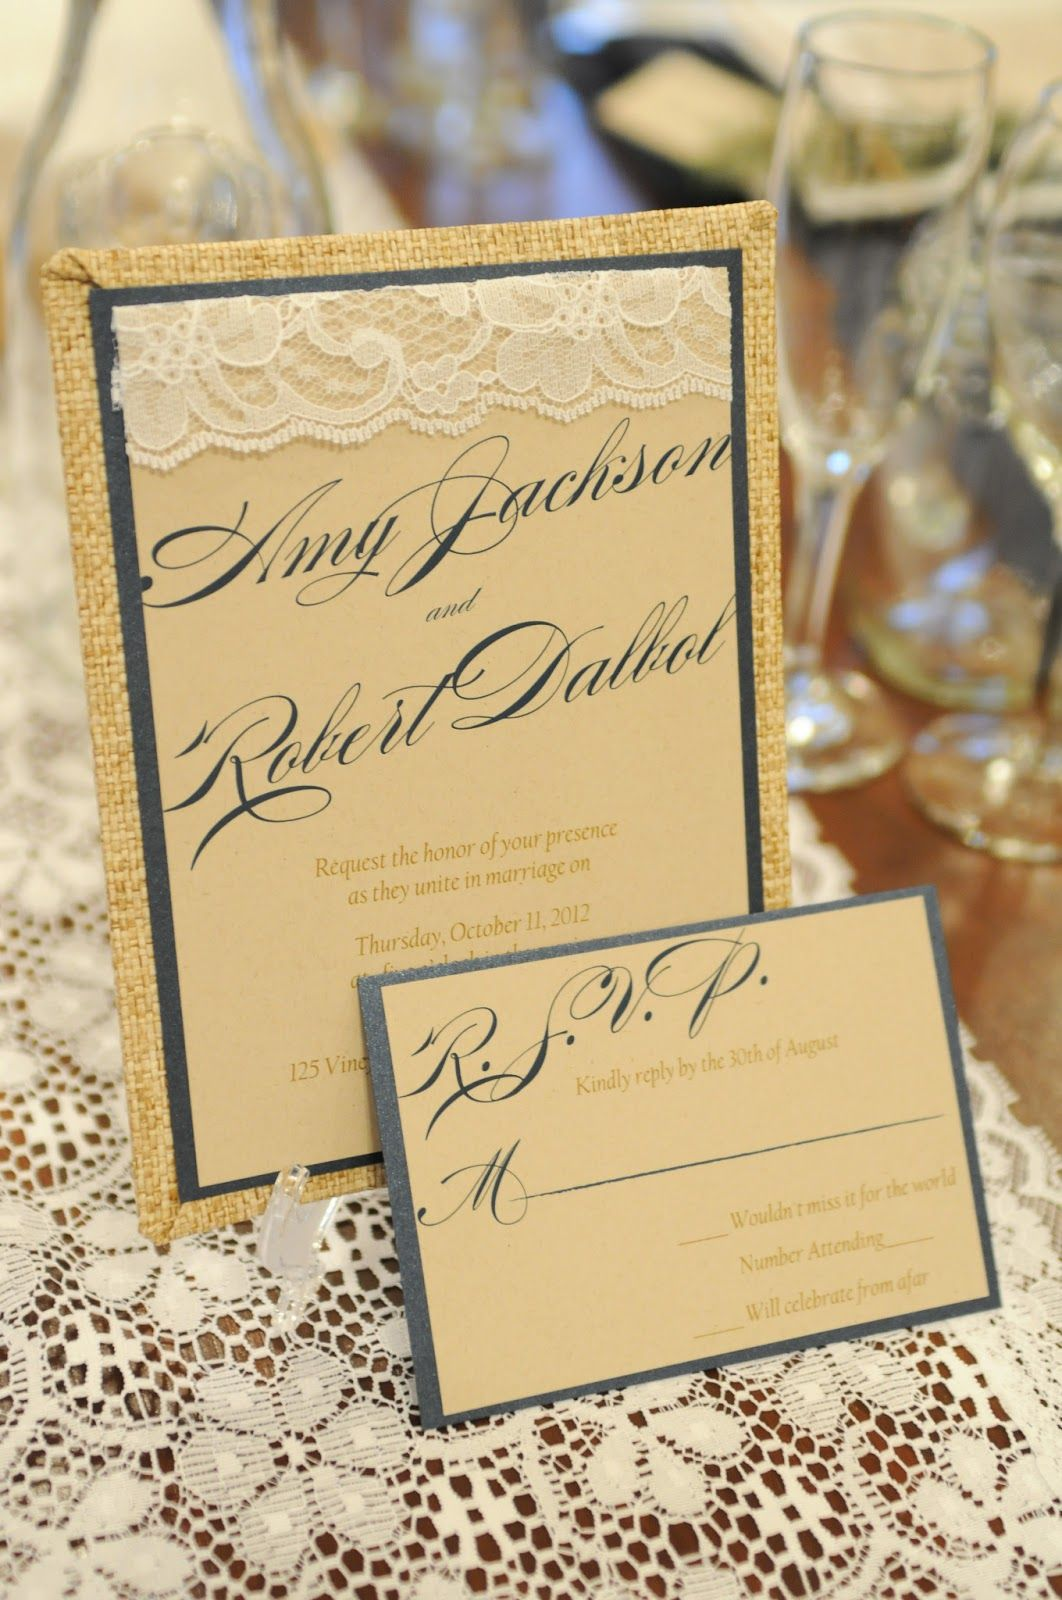 Common questions about wedding invitations answered | Wedding Info ...